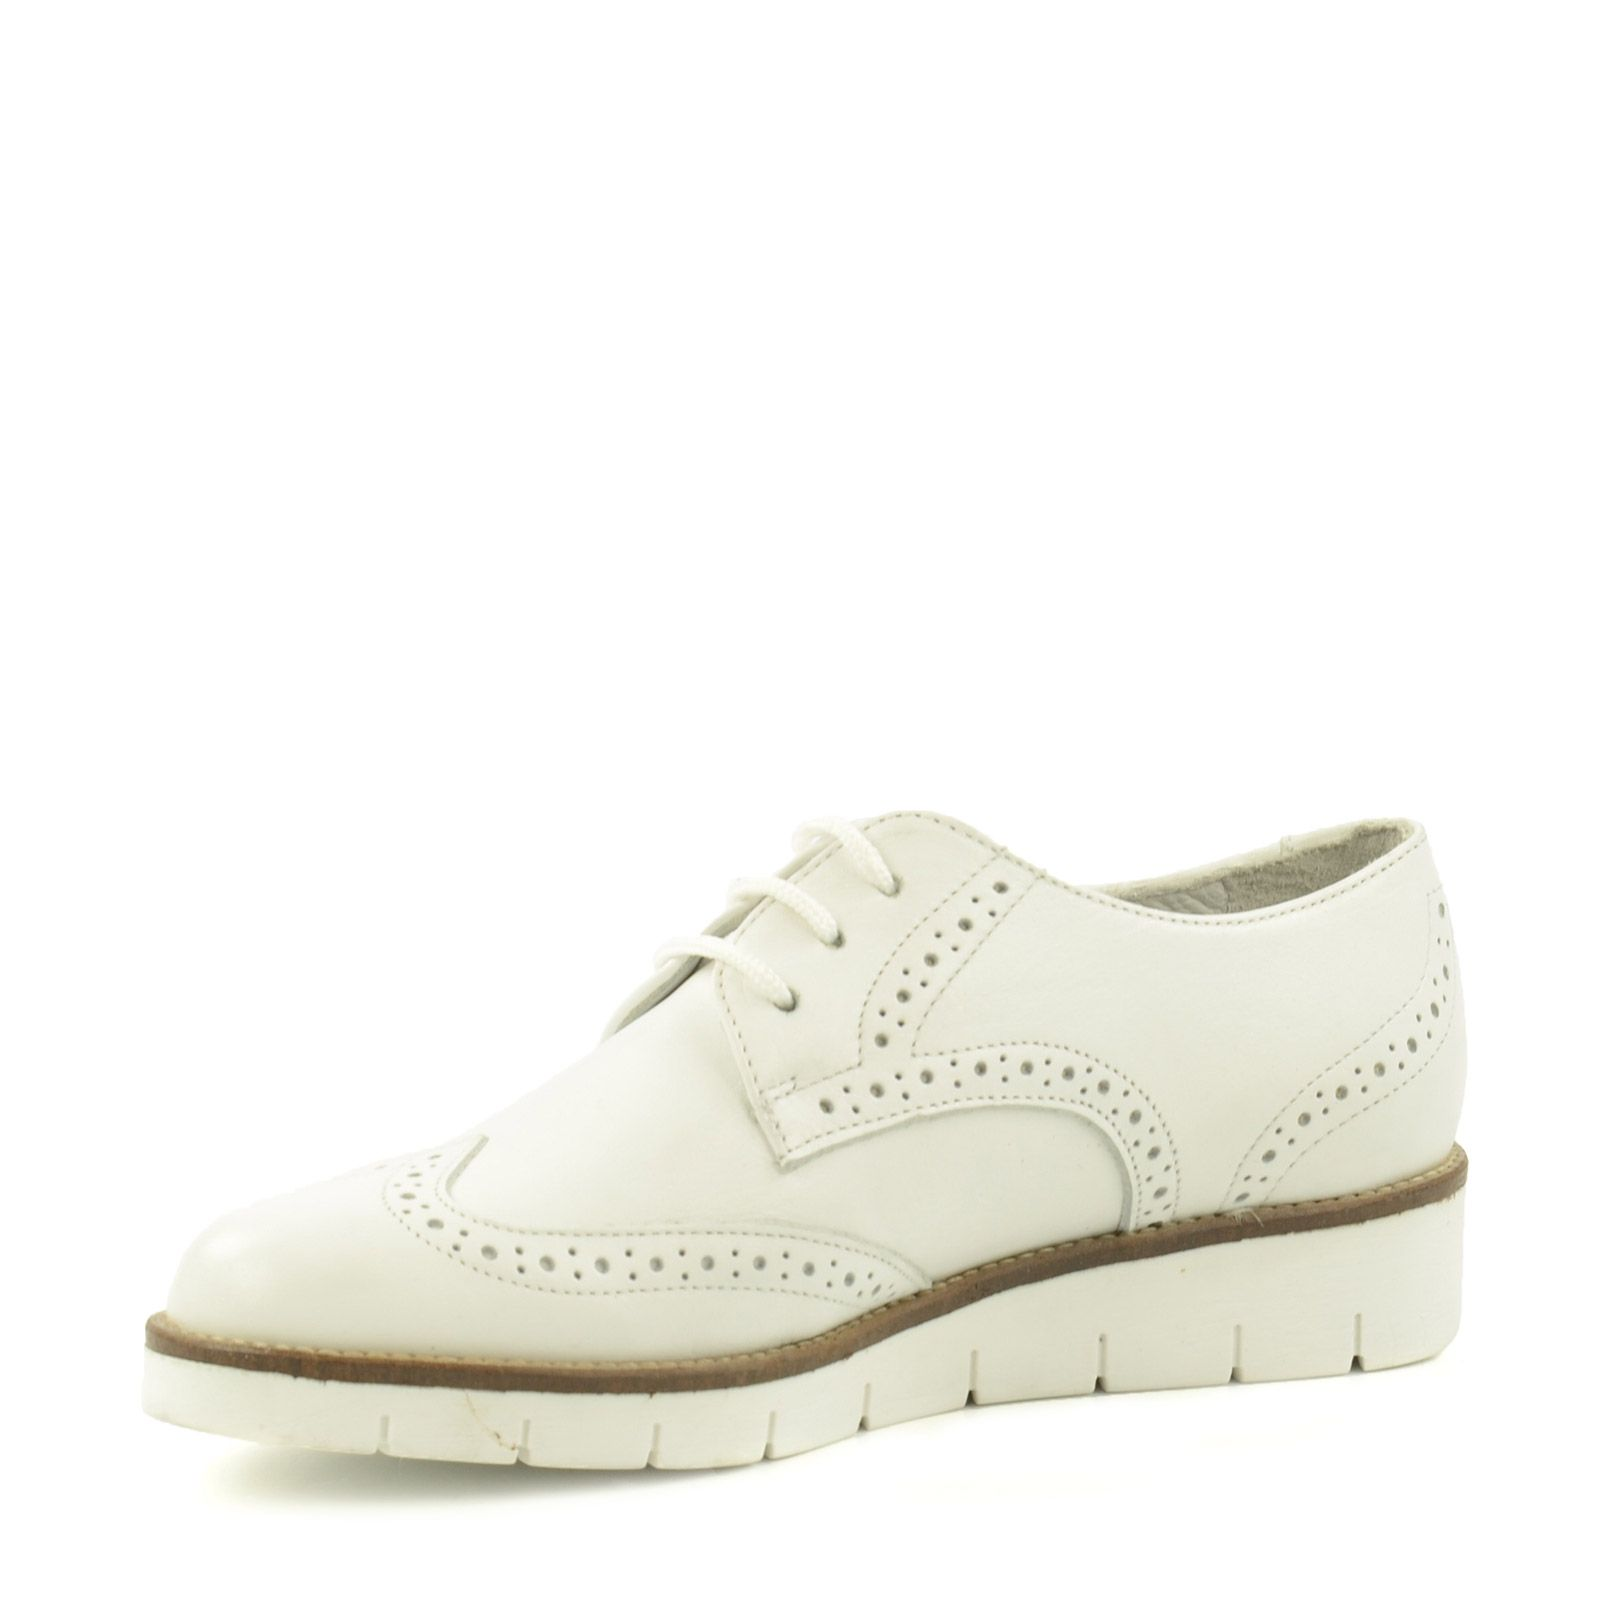 Weiße Brogues mit Plateausohle